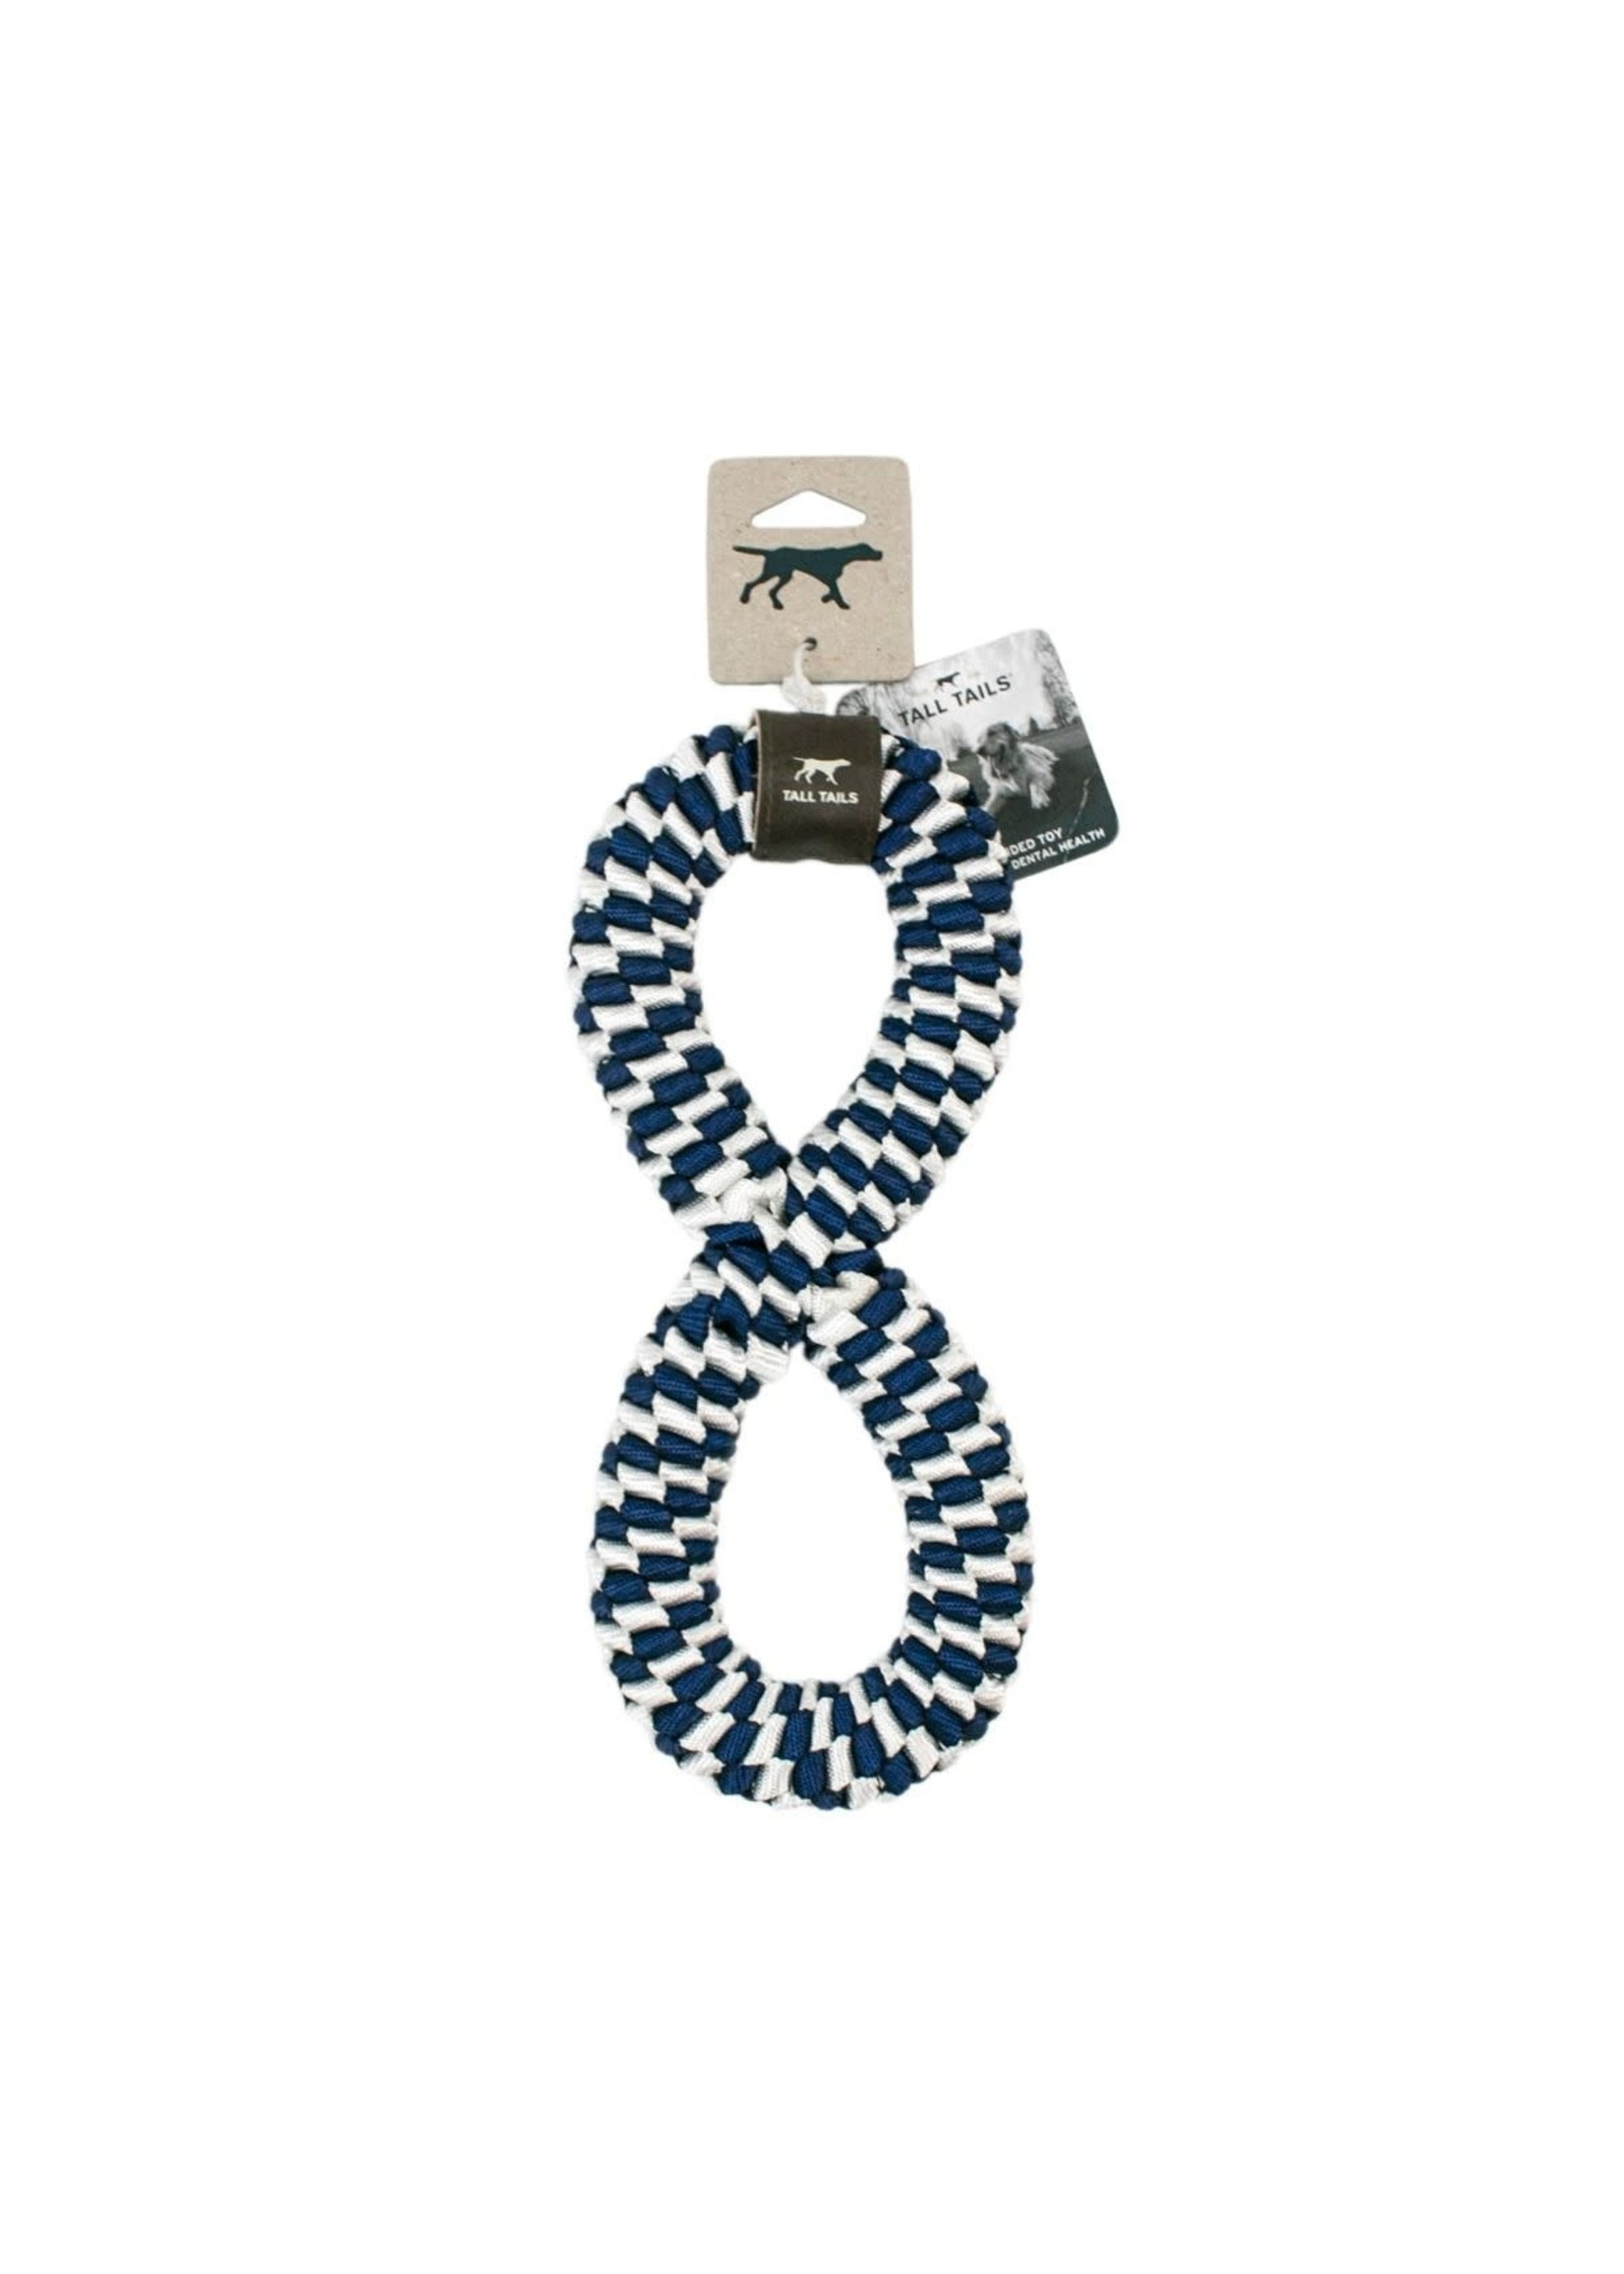 Tall Tails Tall Tails Braid Infinity Ring Navy